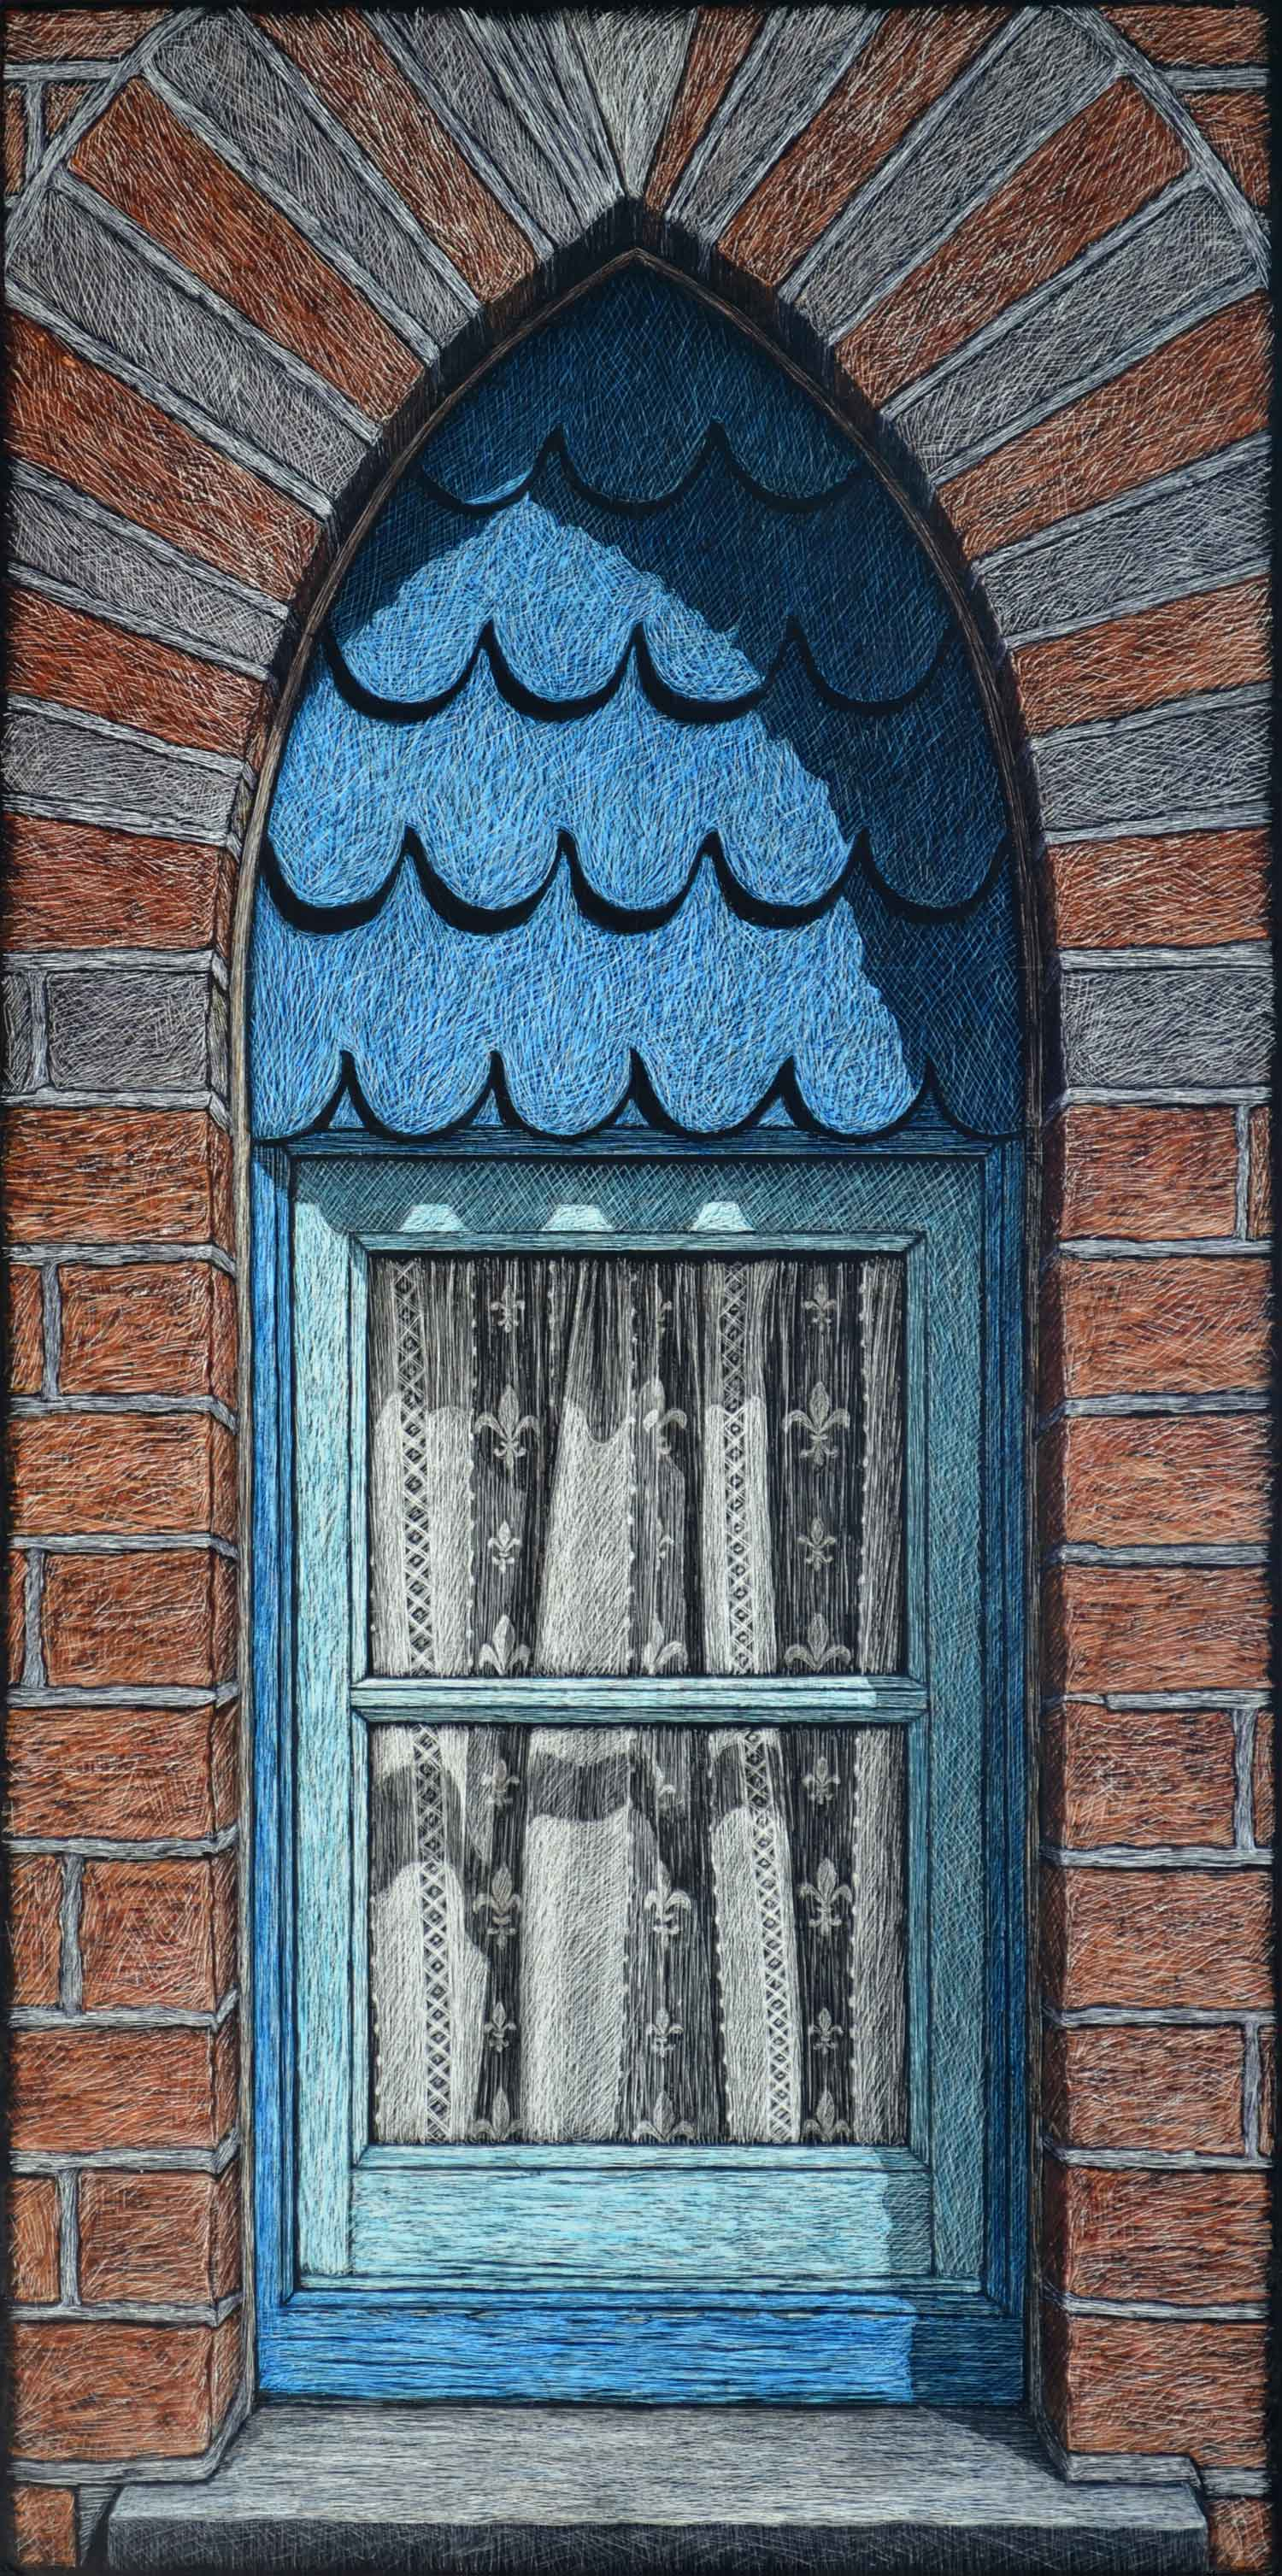 THE ALMS HOUSE WINDOW  61.5 X 30.5 CM  PIGMENT ON COTTON RAG PAPER  $1000 also available 84 x 42 cm $1,550